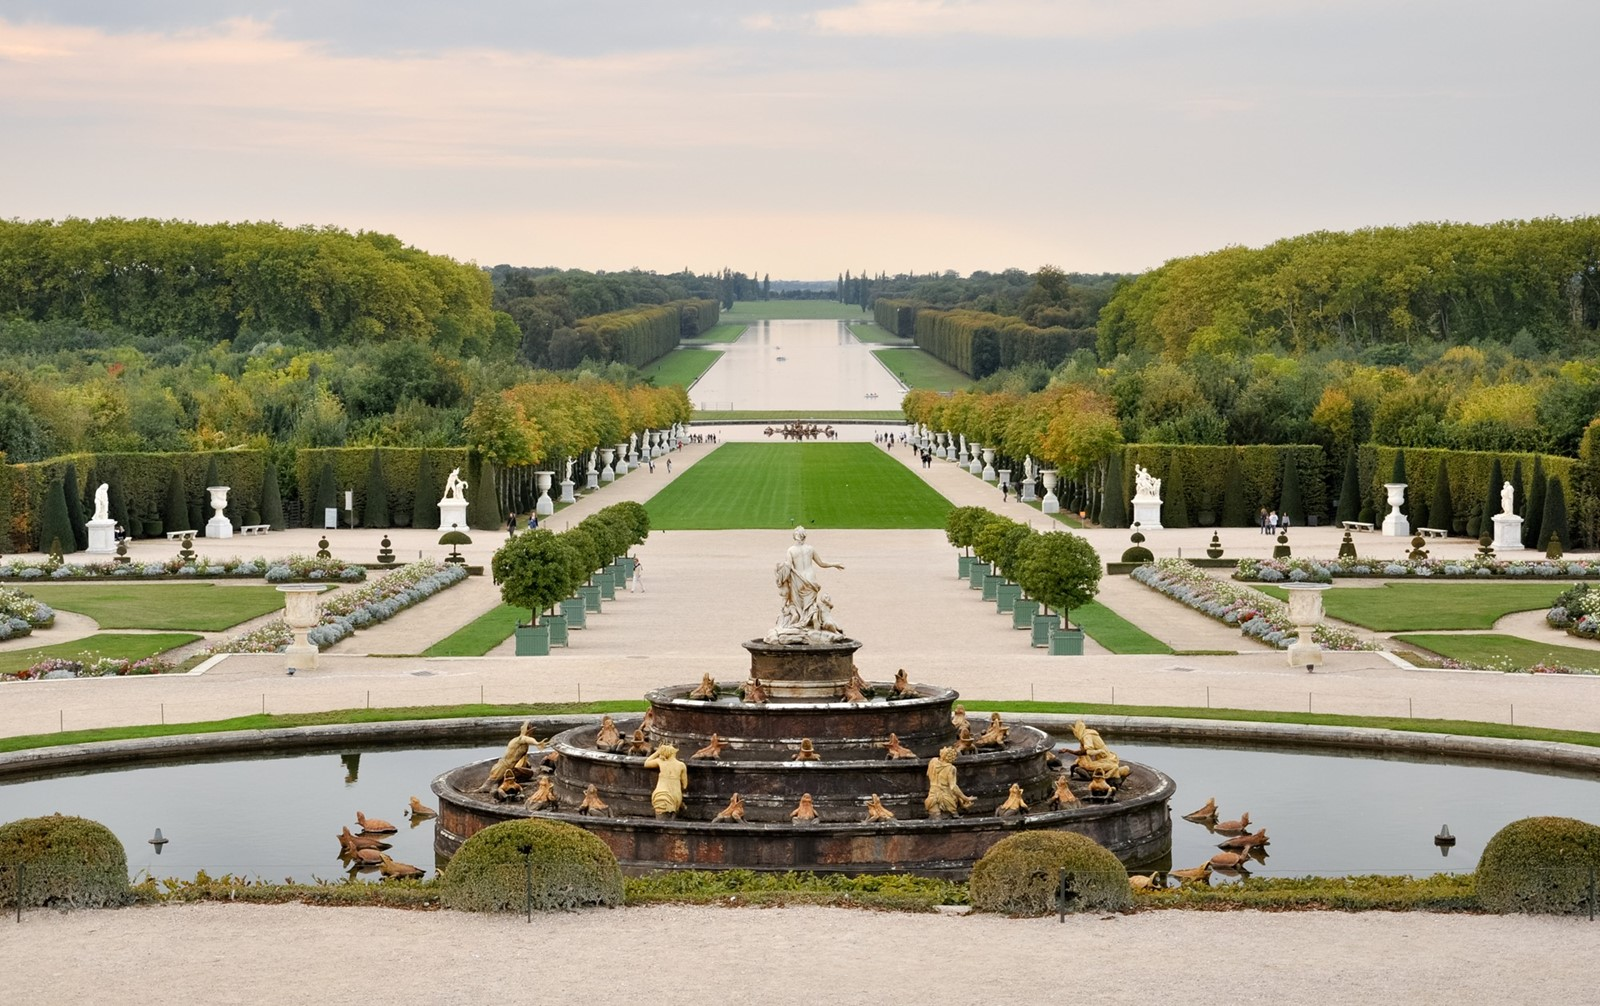 The Gardens of the Palace of Versailles, France